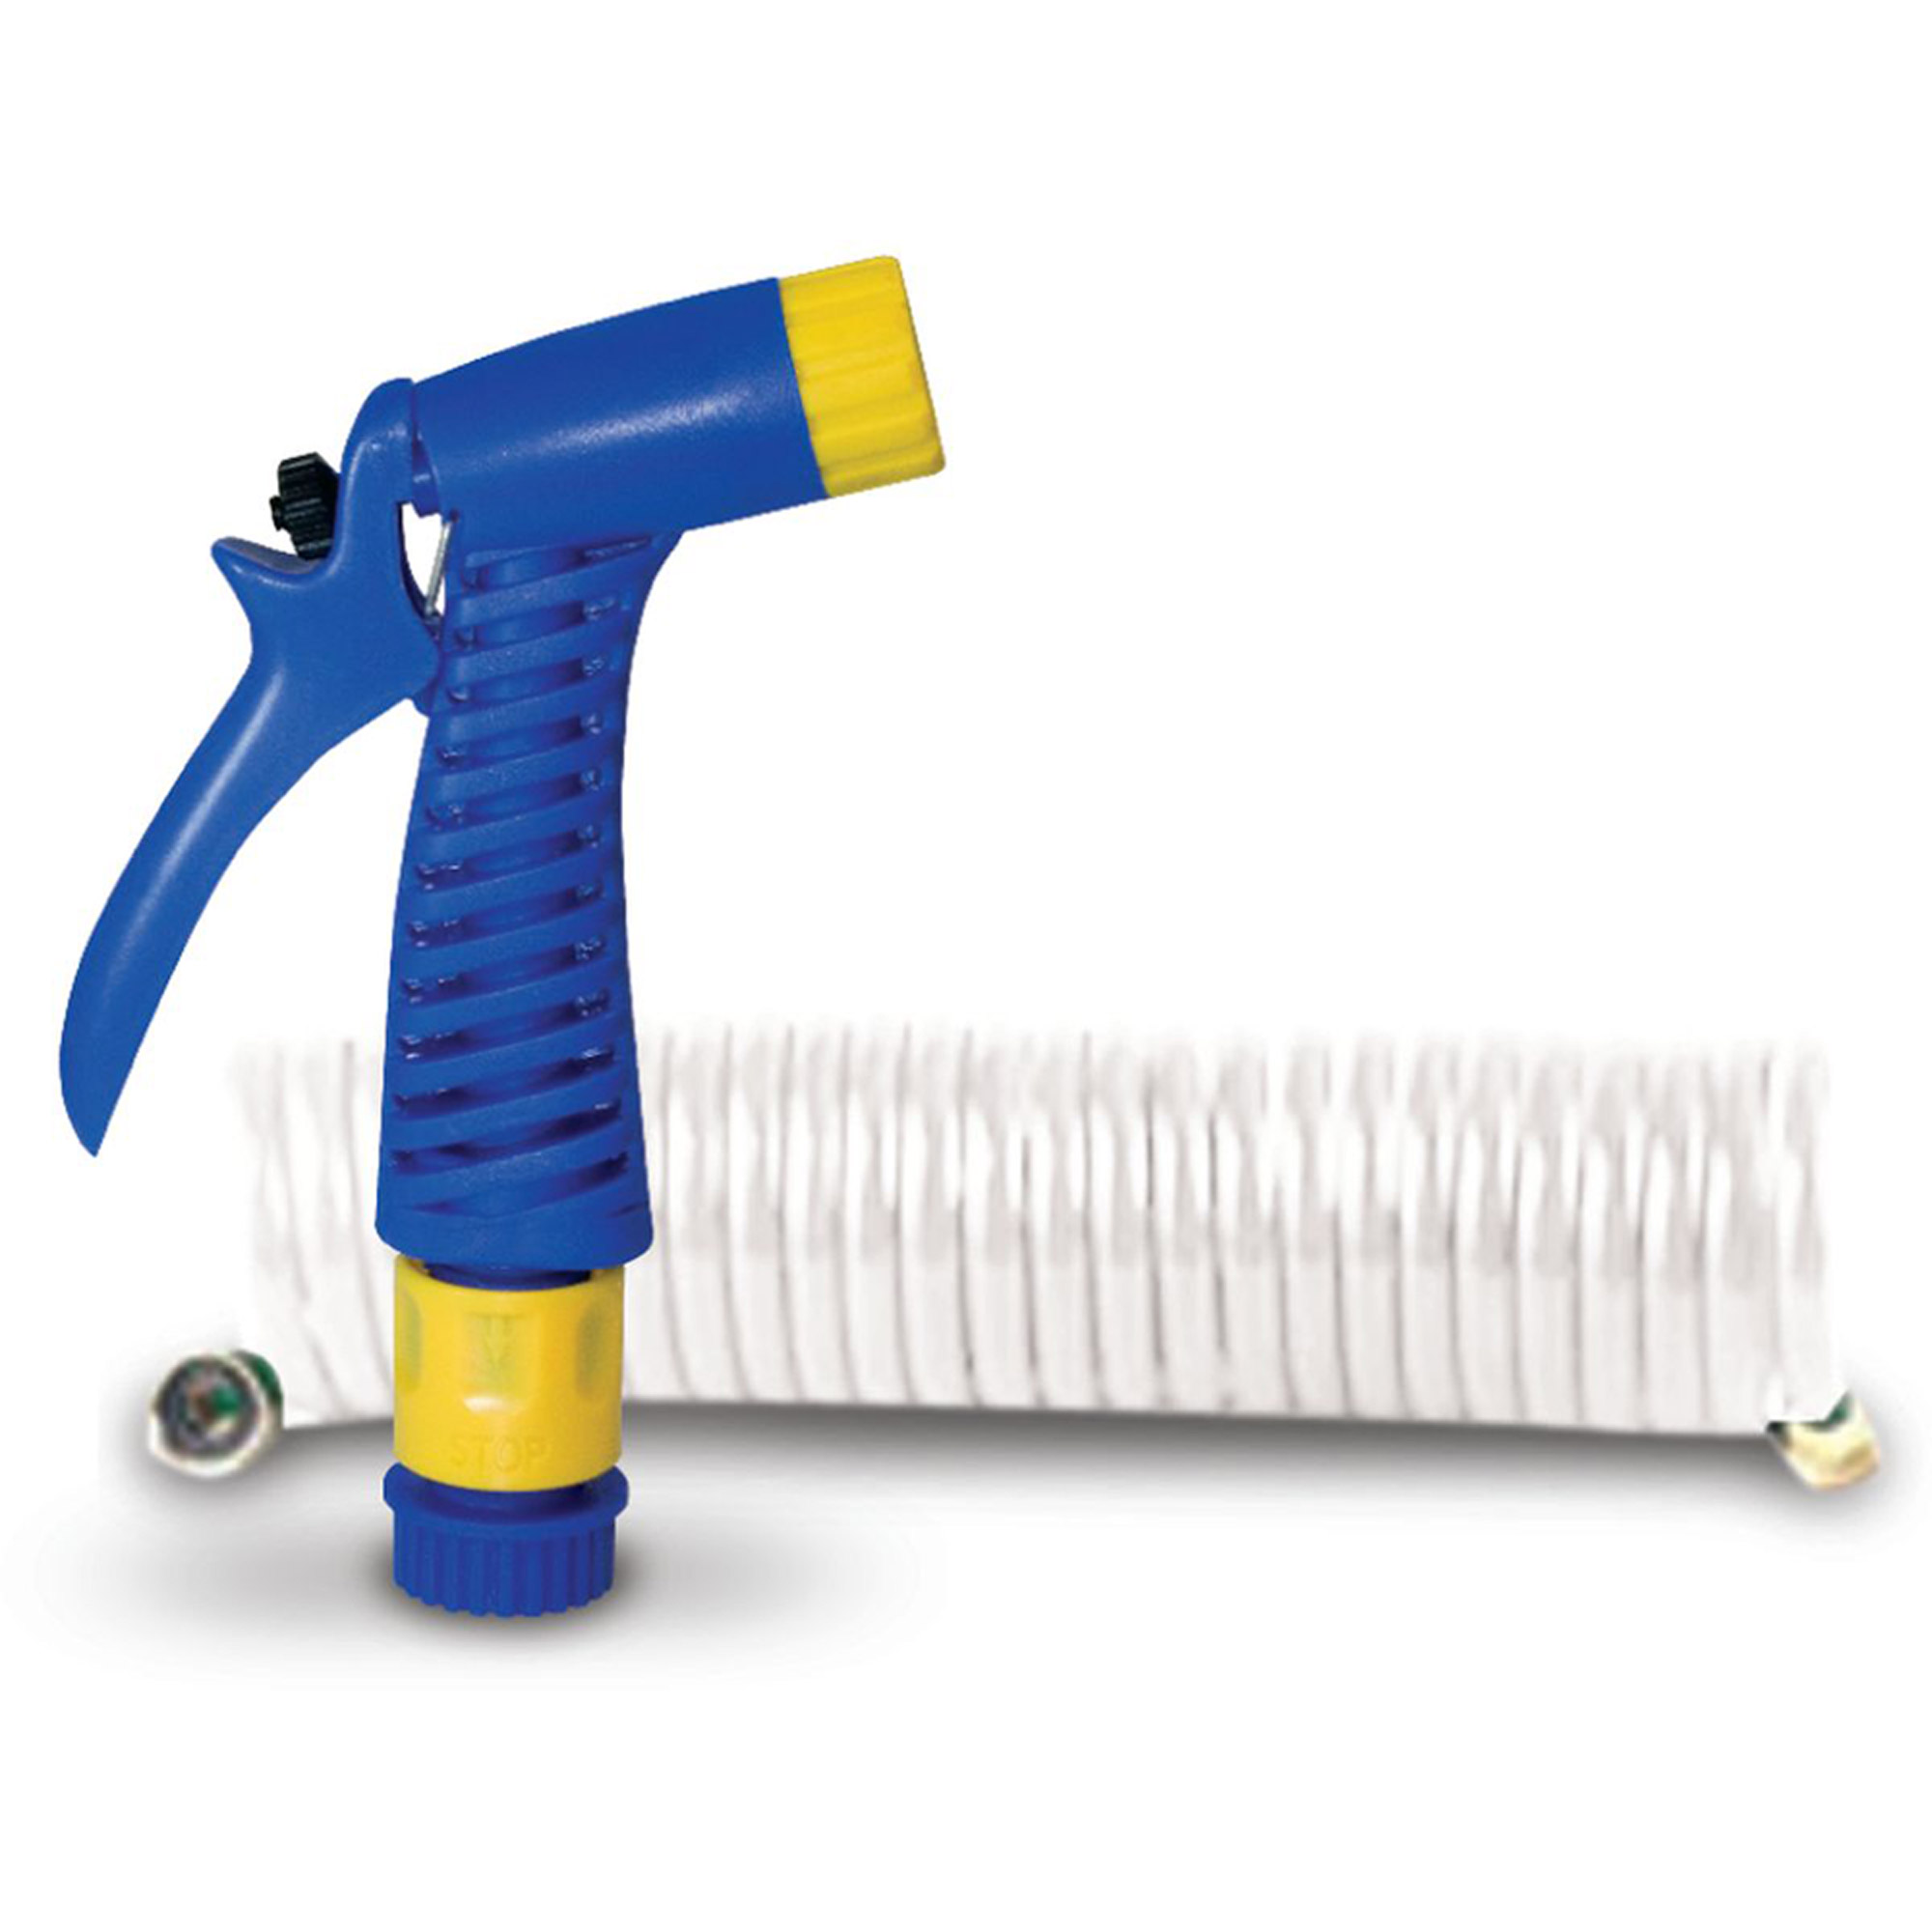 """SeaSense 1/2"""" x 15' Coiled Hose with Nozzle"""